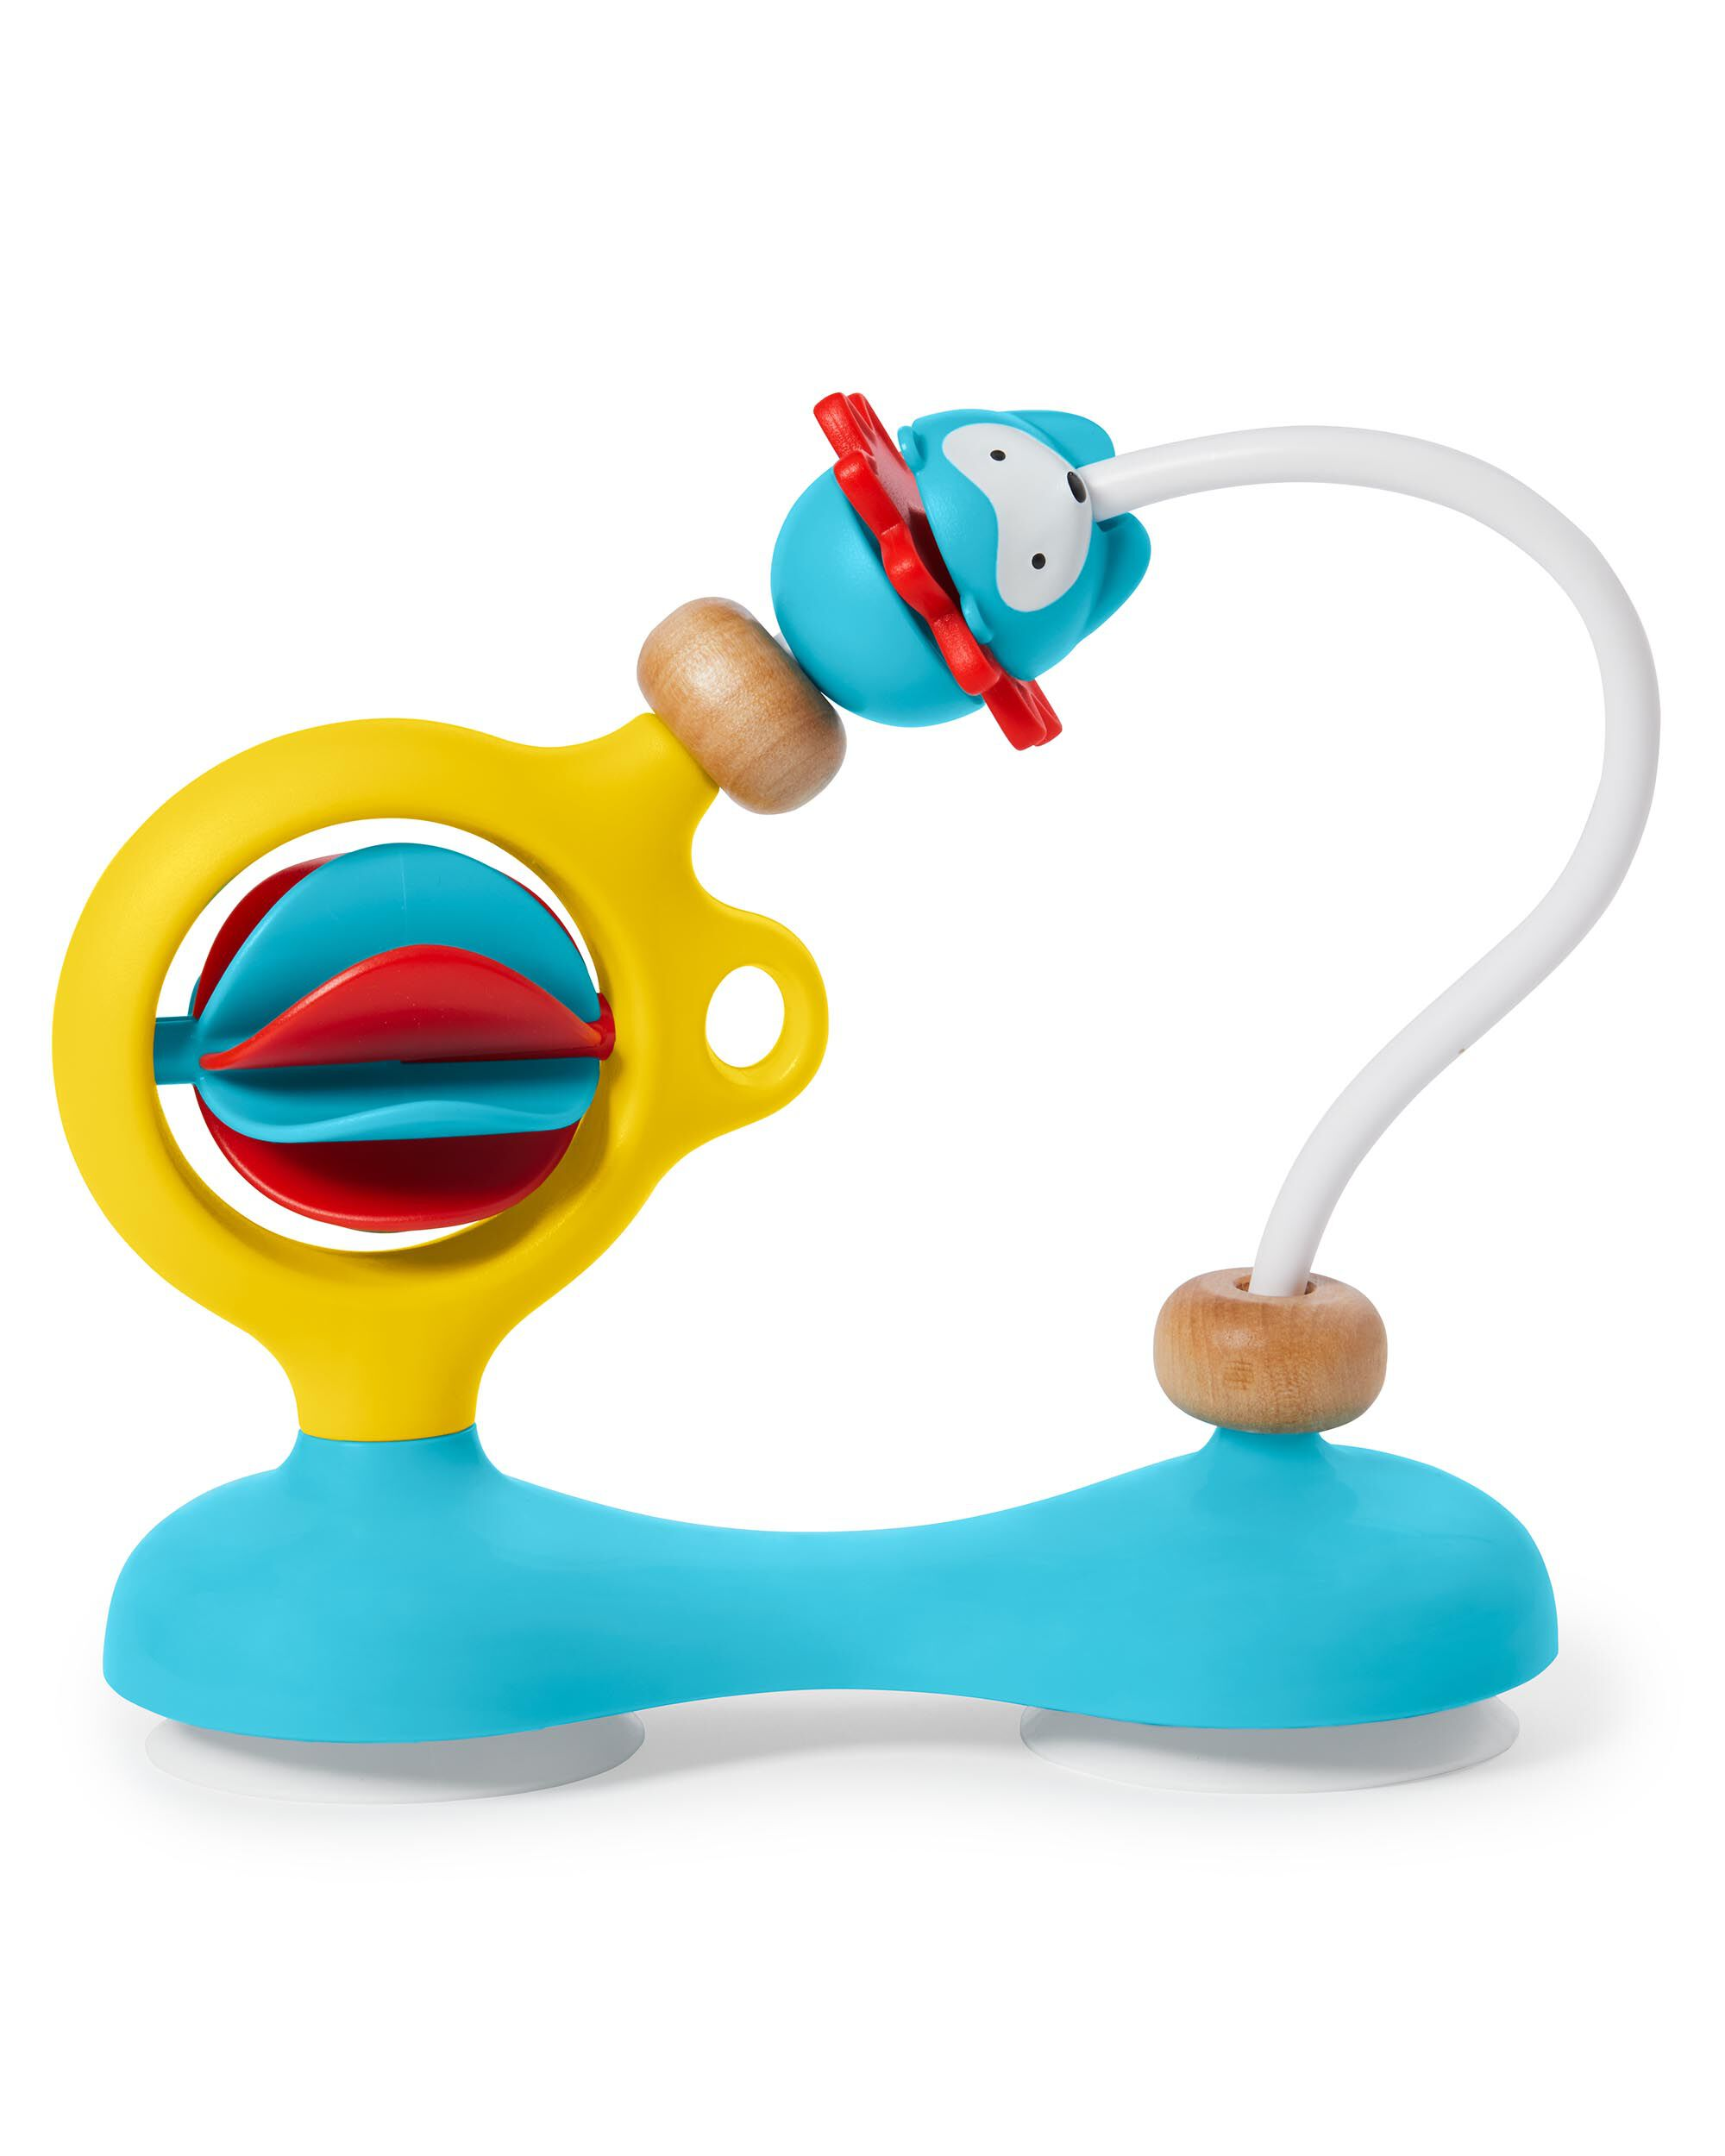 High Chairs And Booster Seats. Explore U0026 More Bead Mover High Chair Toy